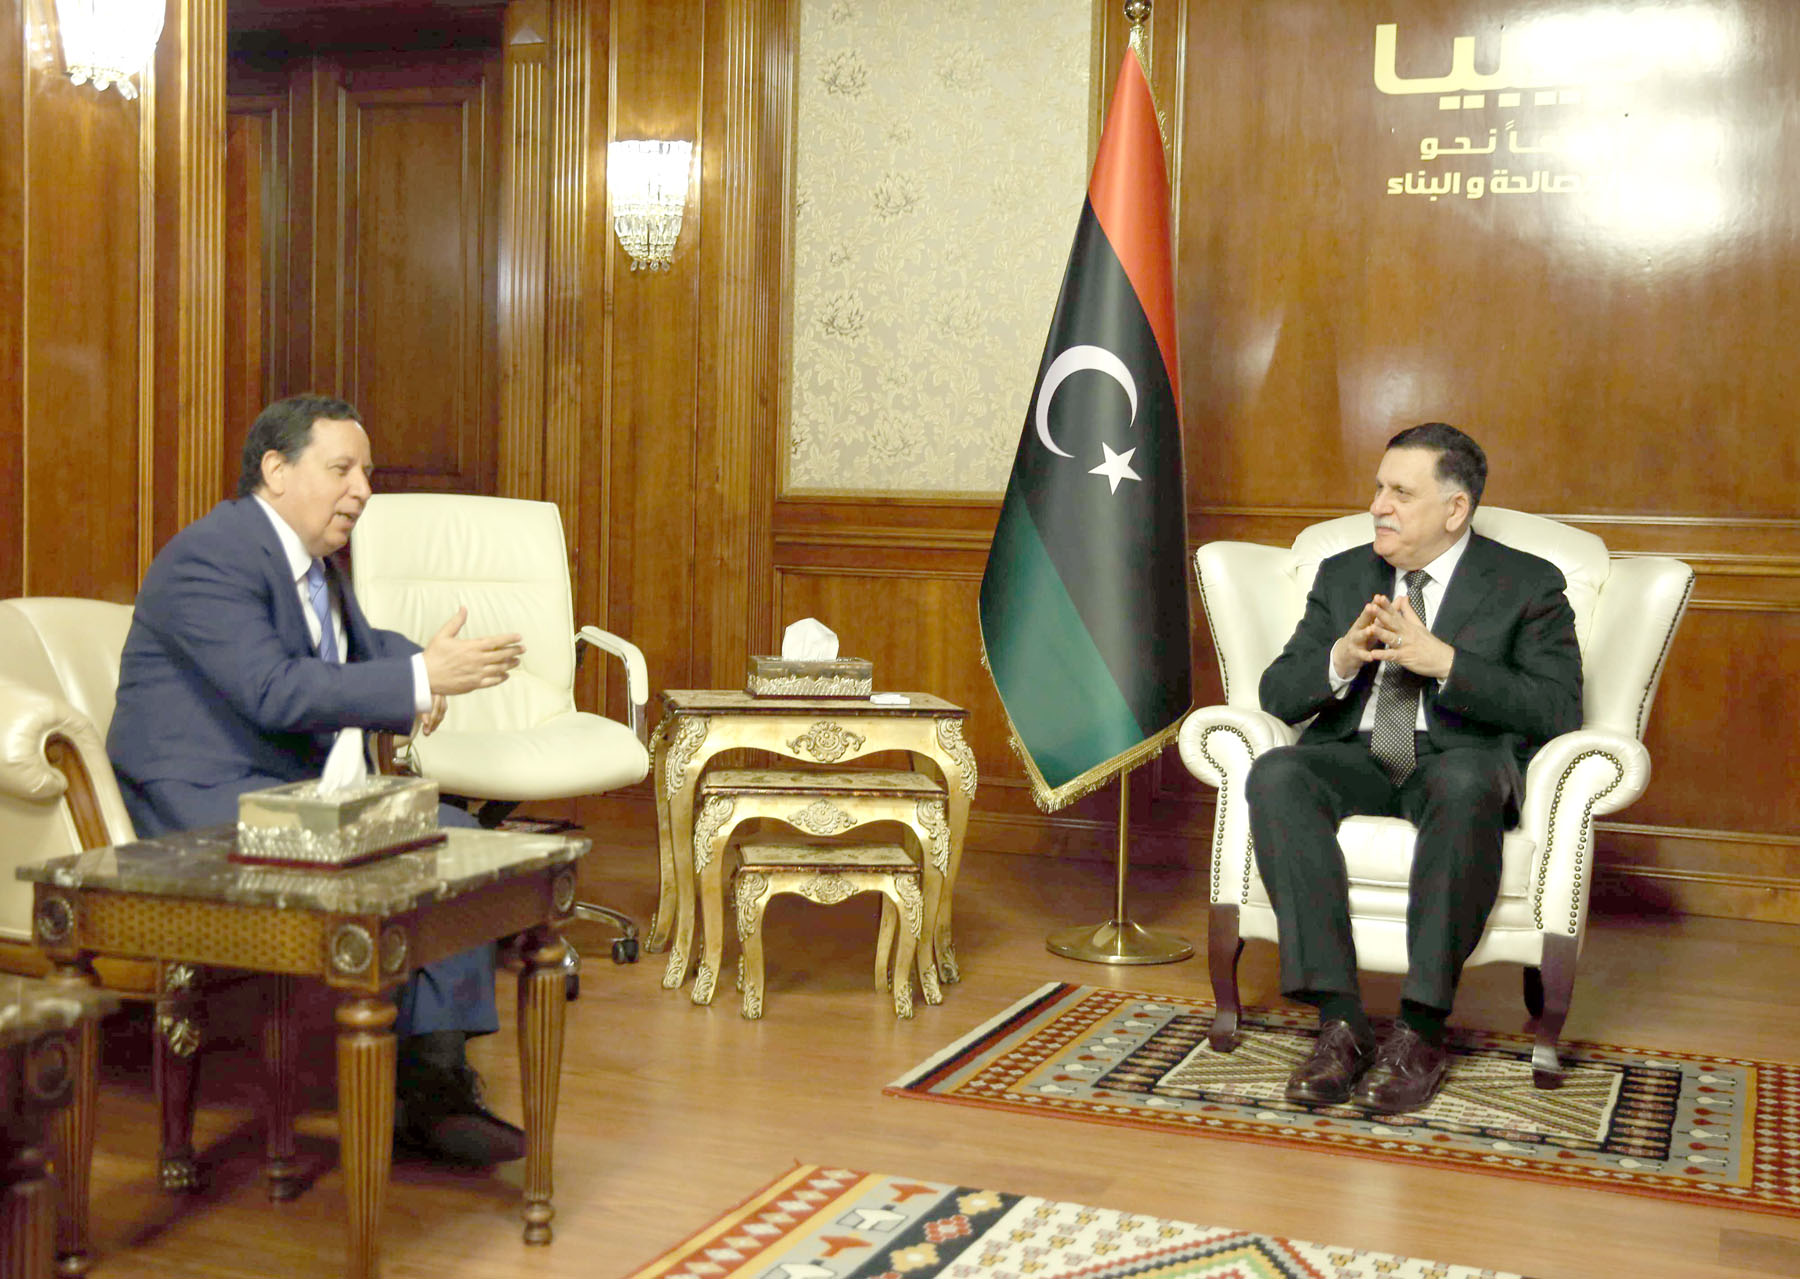 New push. Libyan Prime Minister Fayez al-Sarraj, head of the UN-backed government in Tripoli (R), meets with Tunisian Foreign Minister Khemaies Jhinaoui in Tripoli. (AFP)